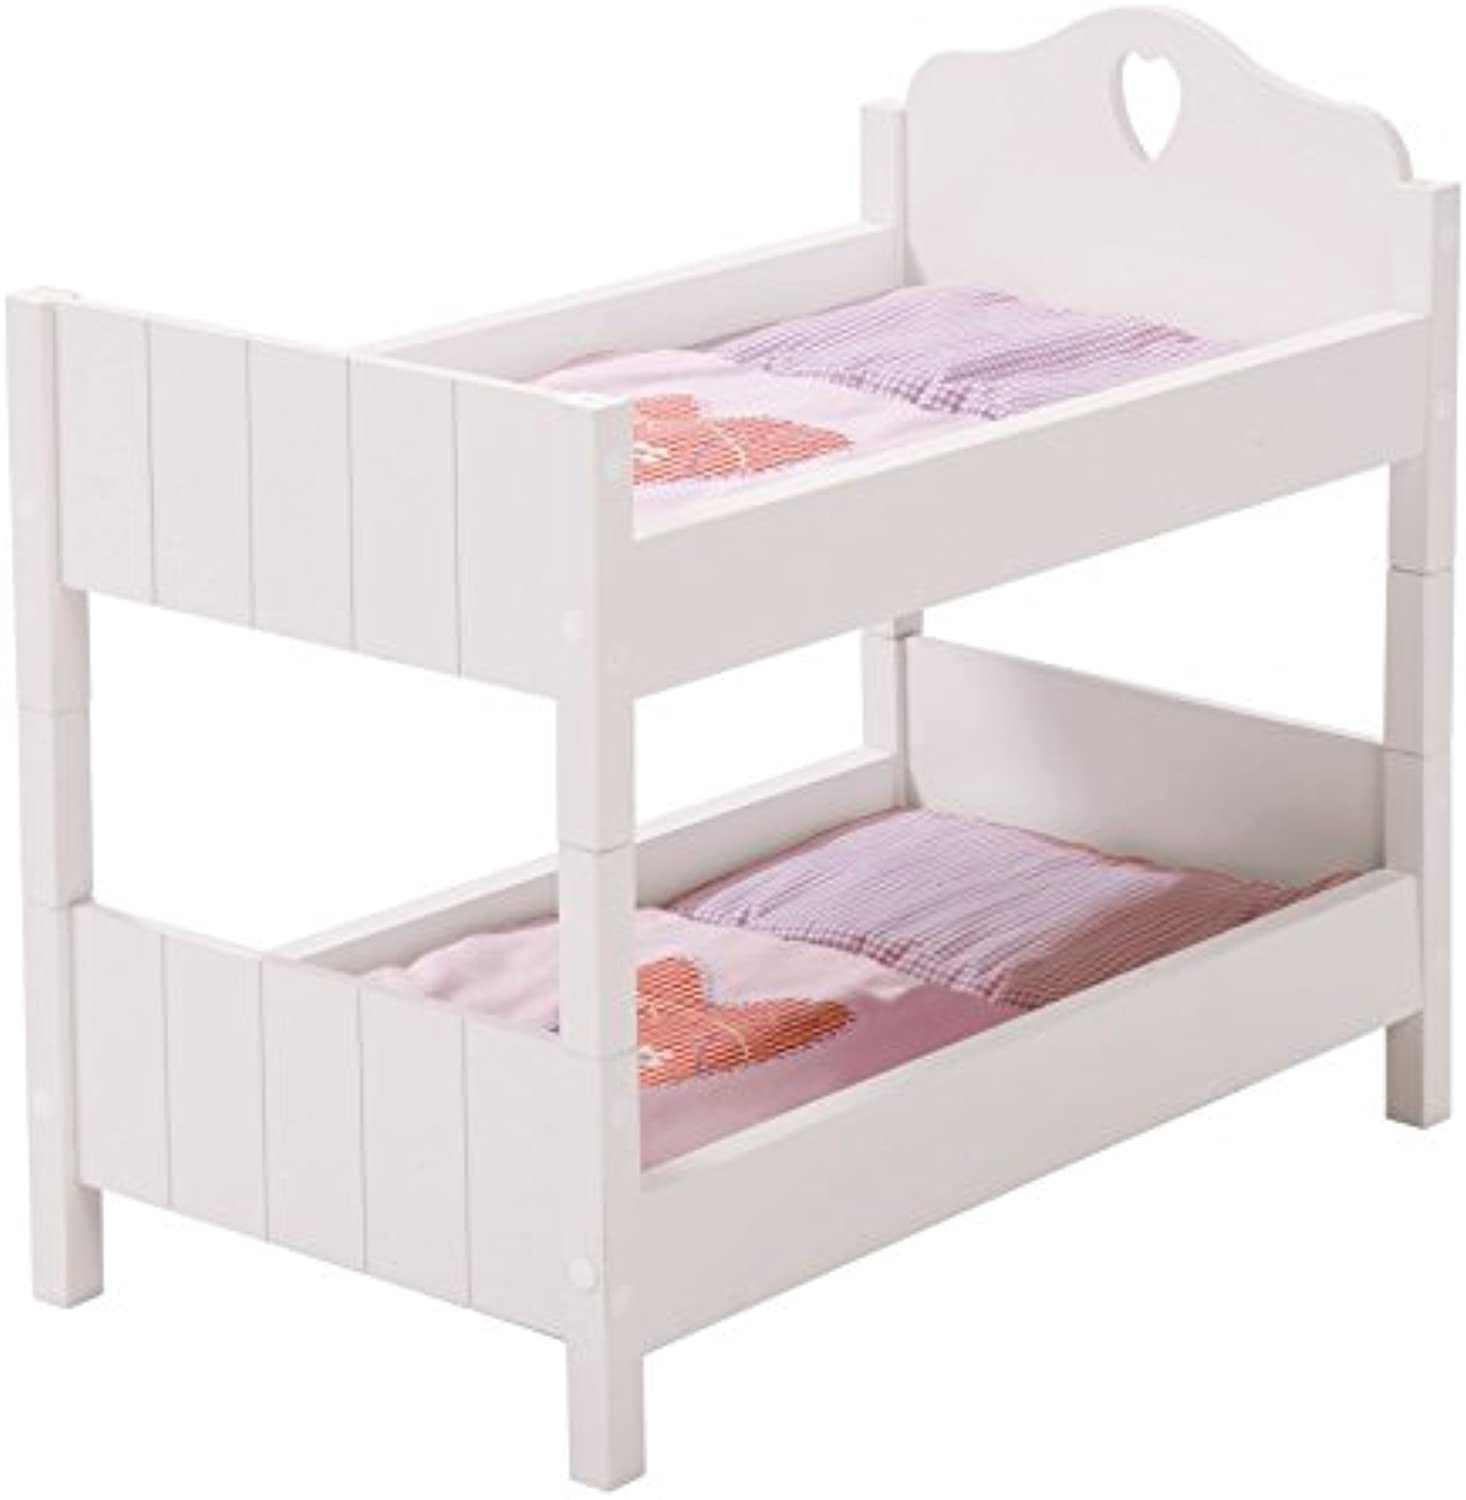 Roba 98331 Doll bunk bed Fienchen